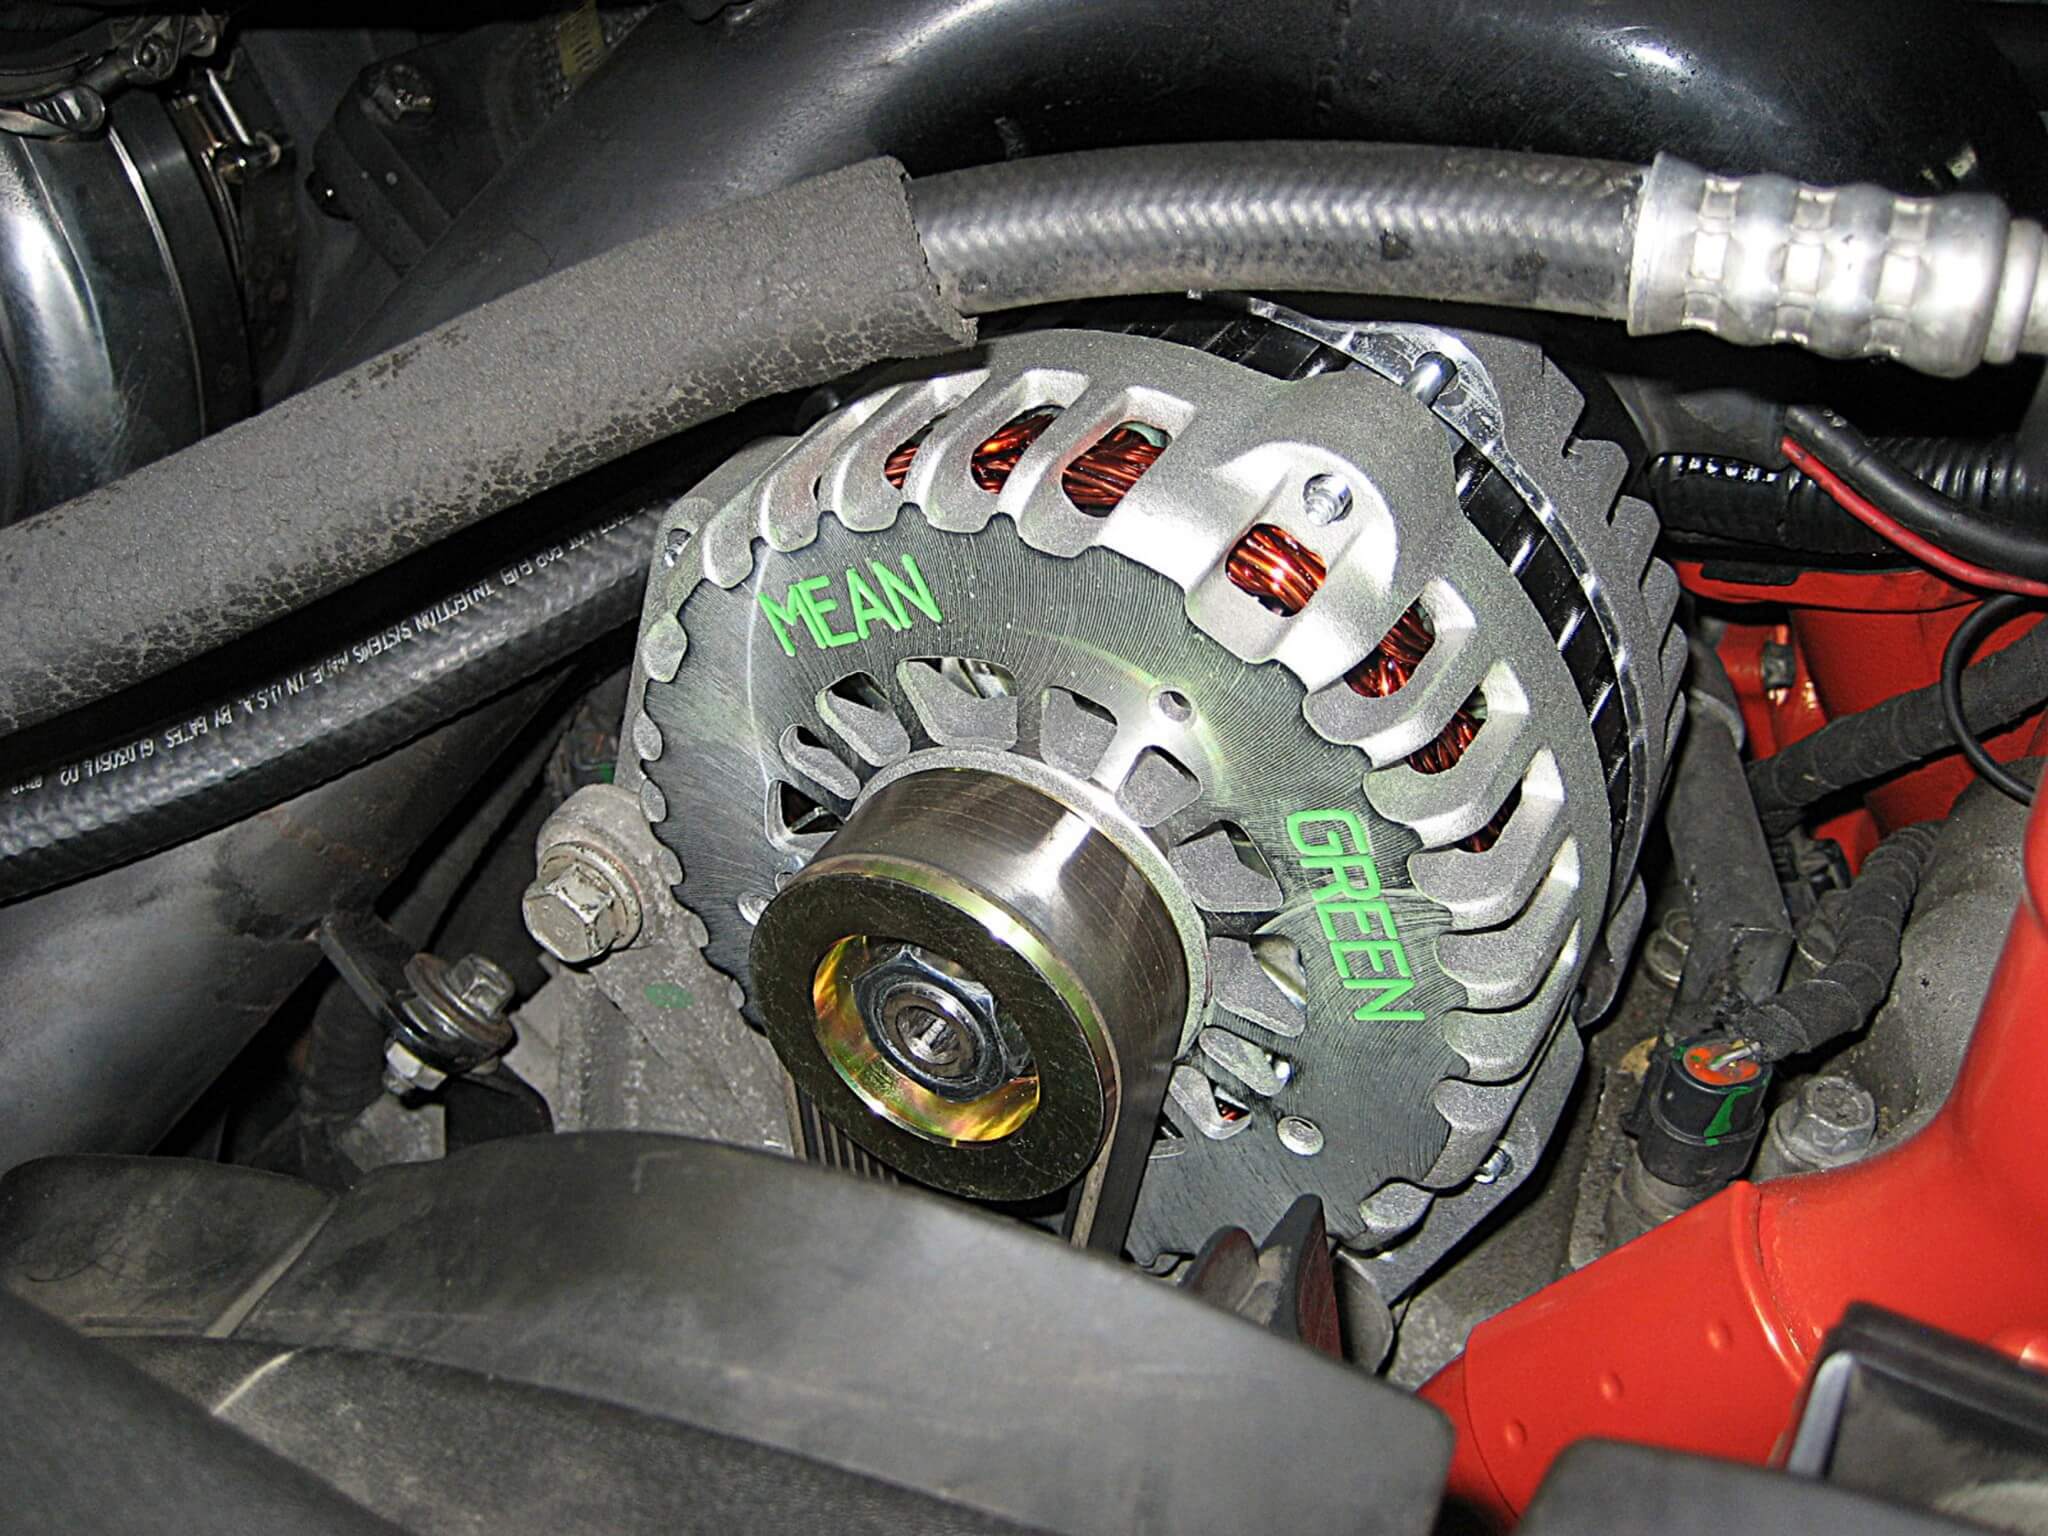 The Mean Green alternator fits nicely in stock OEM mounting brackets. The  install